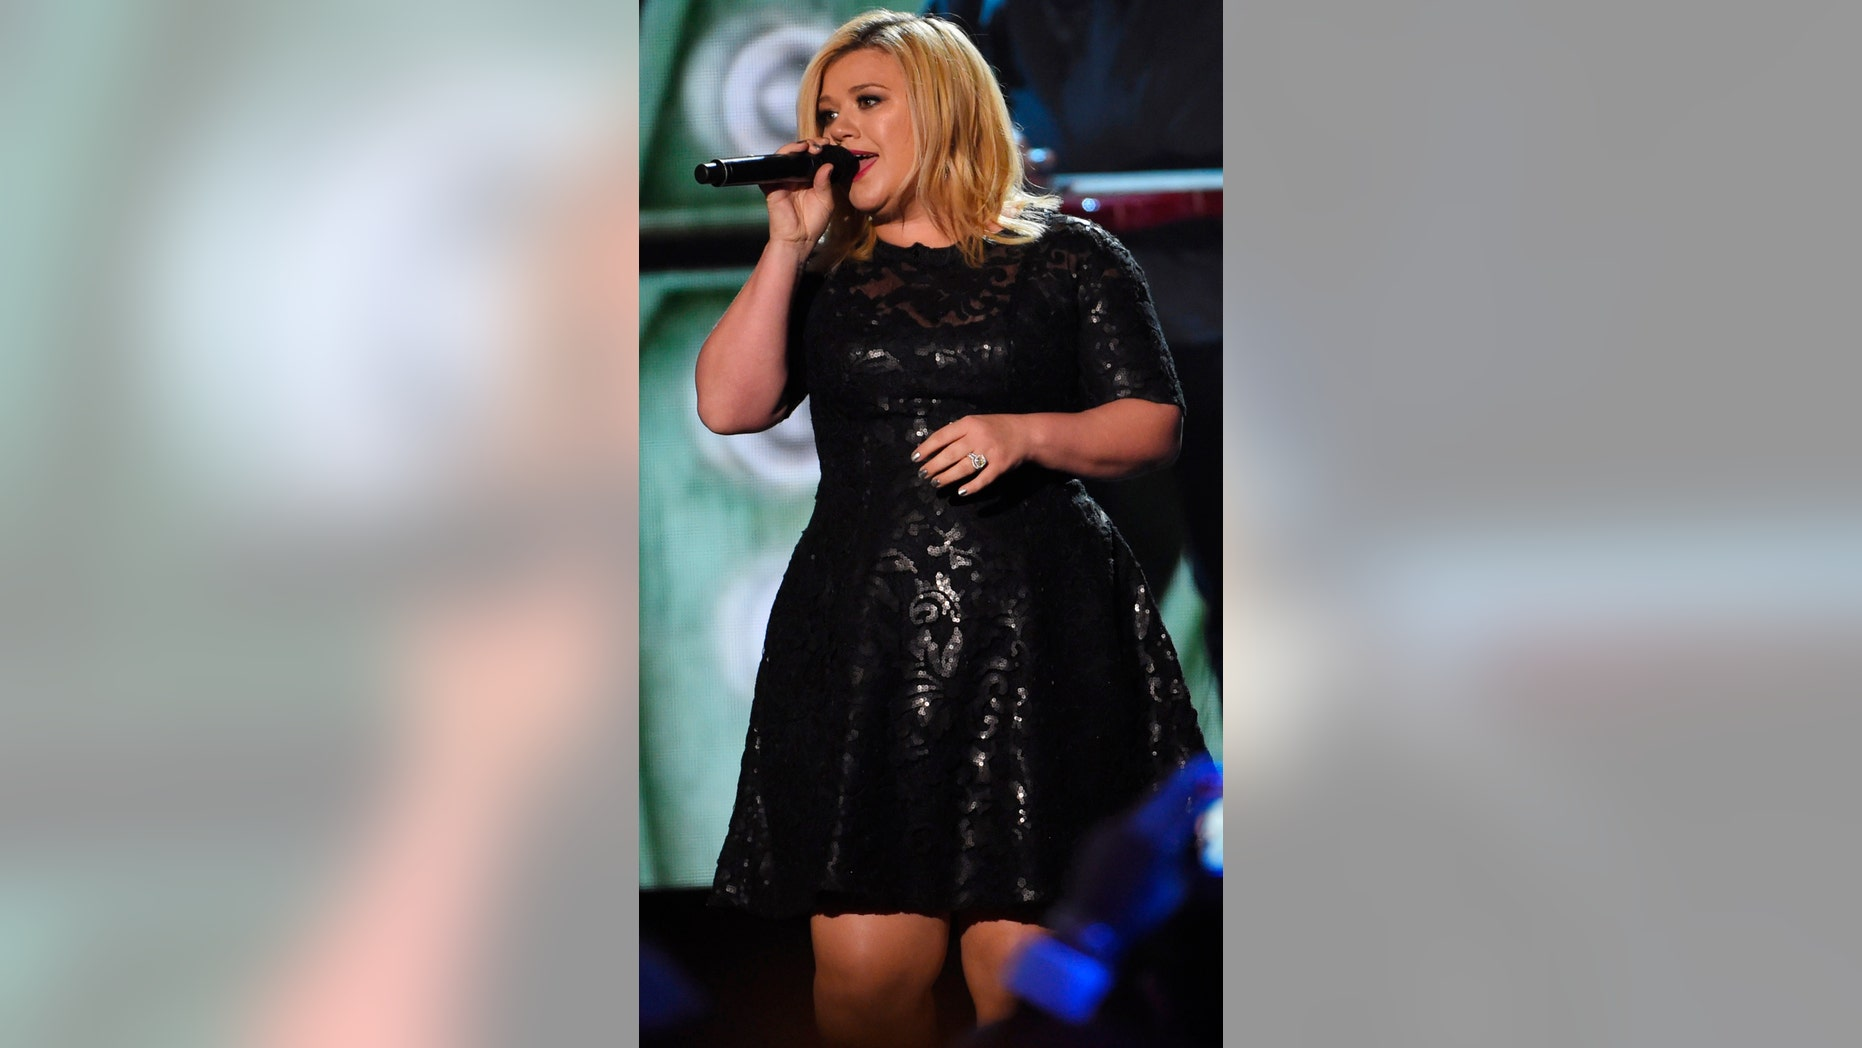 """Kelly Clarkson performs """"How Blue"""" as a tribute to Reba McEntire, the recipient of the first NASH Icon Award, during the American Country Countdown Awards in Nashville, Tennessee December 15, 2014."""